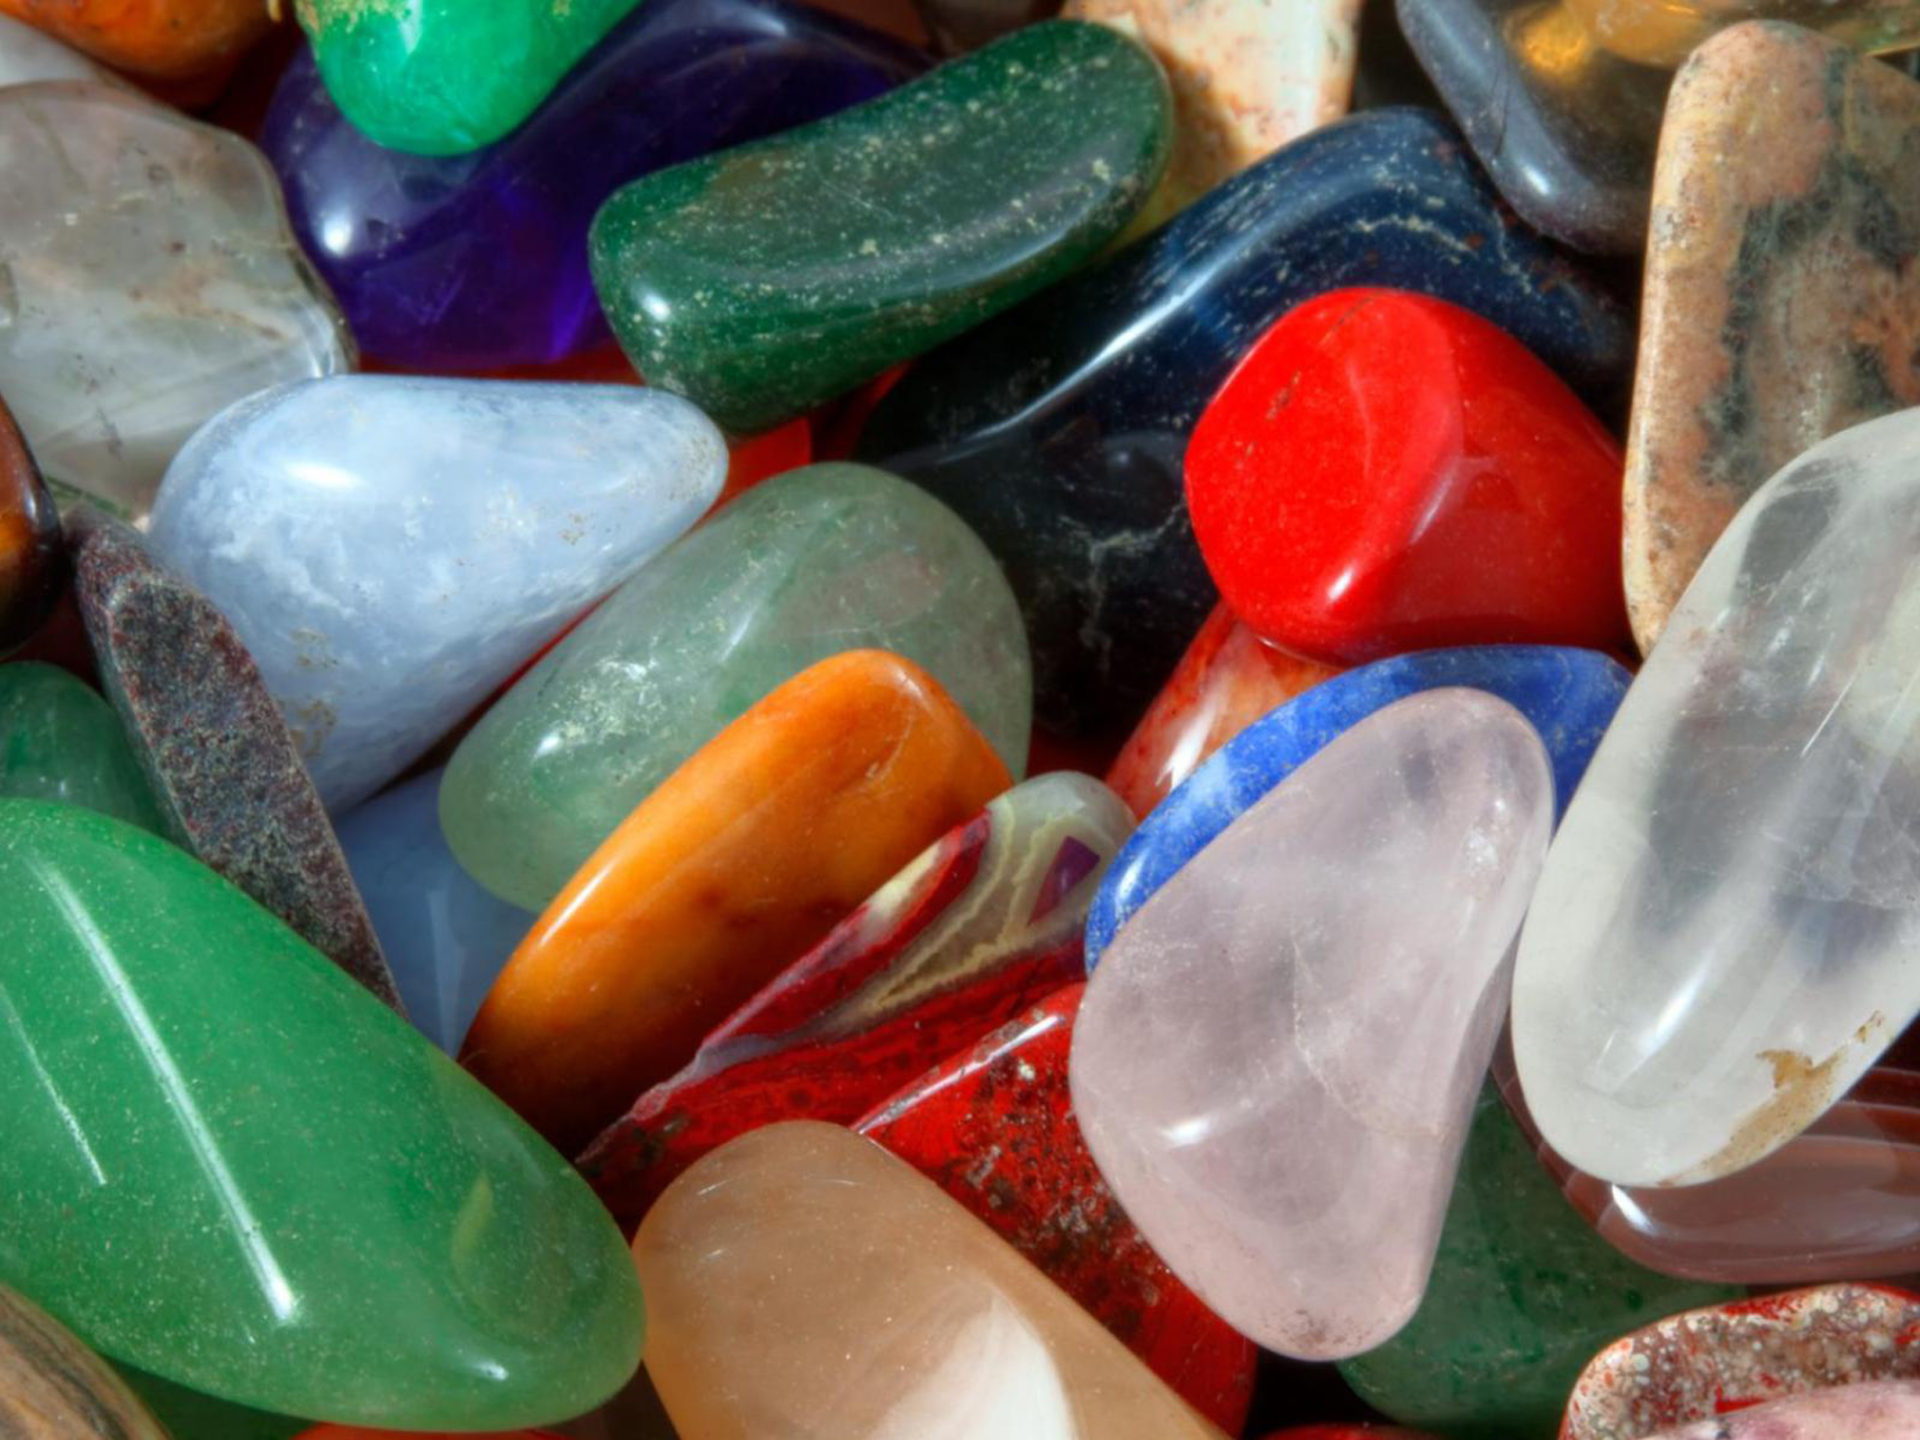 Free Car Hd Wallpapers Download Beautiful Stones In Different Colors Colorful Hd Wallpaper